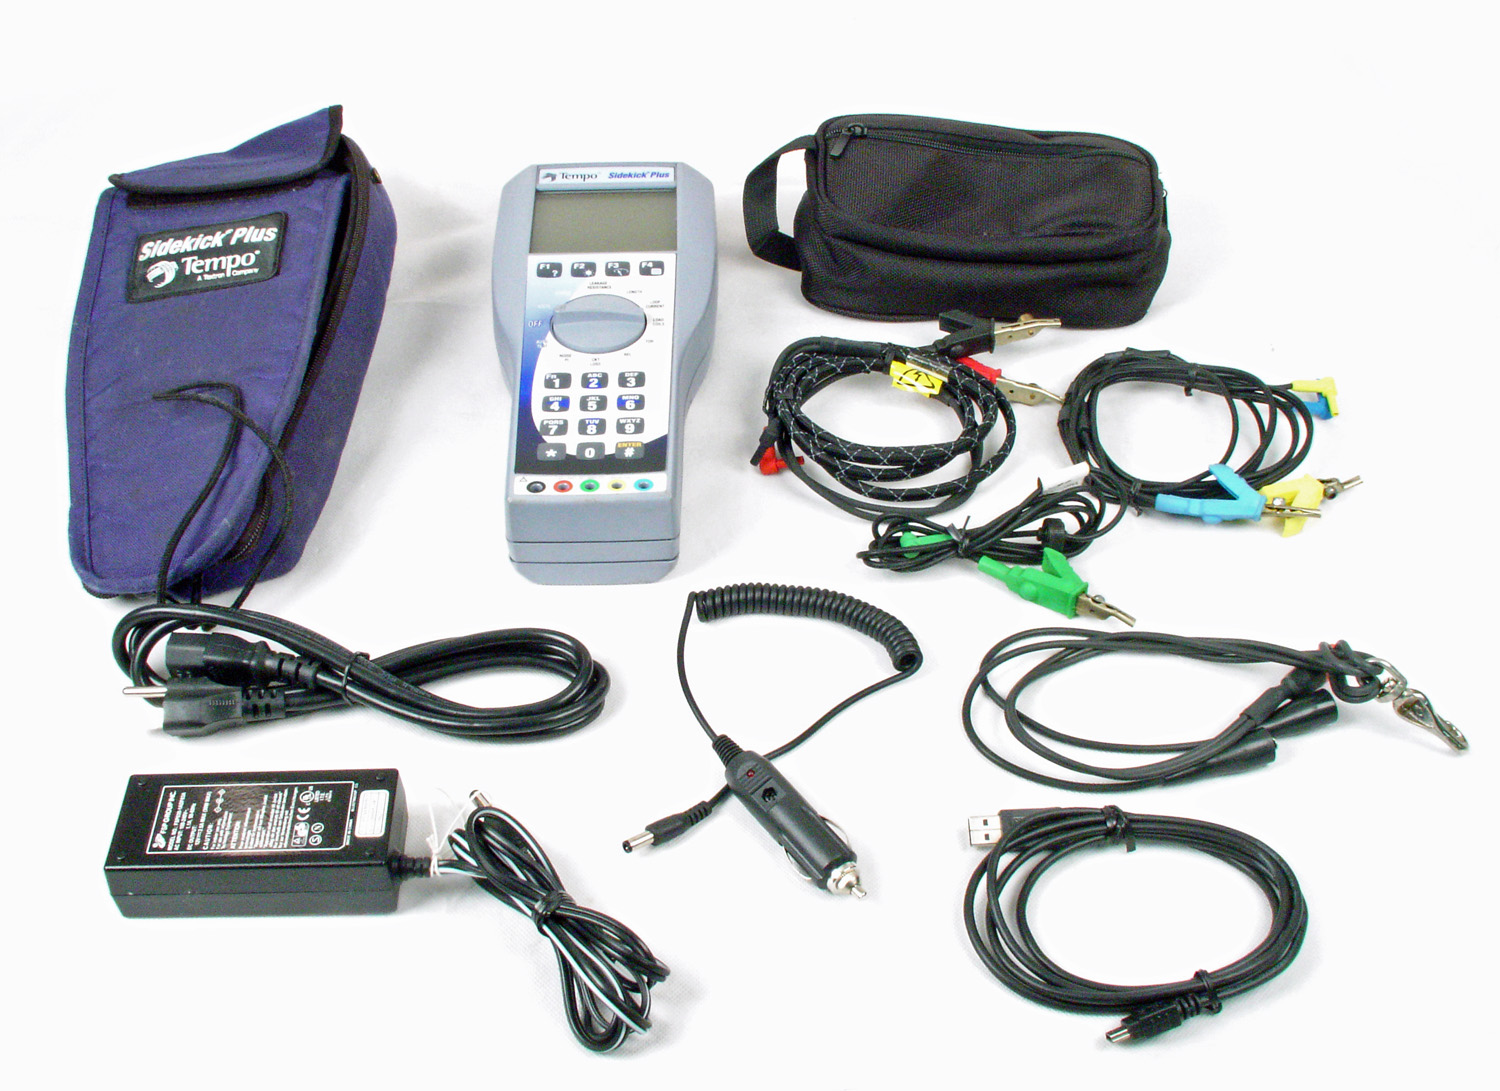 tempo research sidekick plus for sale 595 00 accusource electronics rh accusrc com Tempo Sidekick TN User Manual Tempo Sidekick Meter